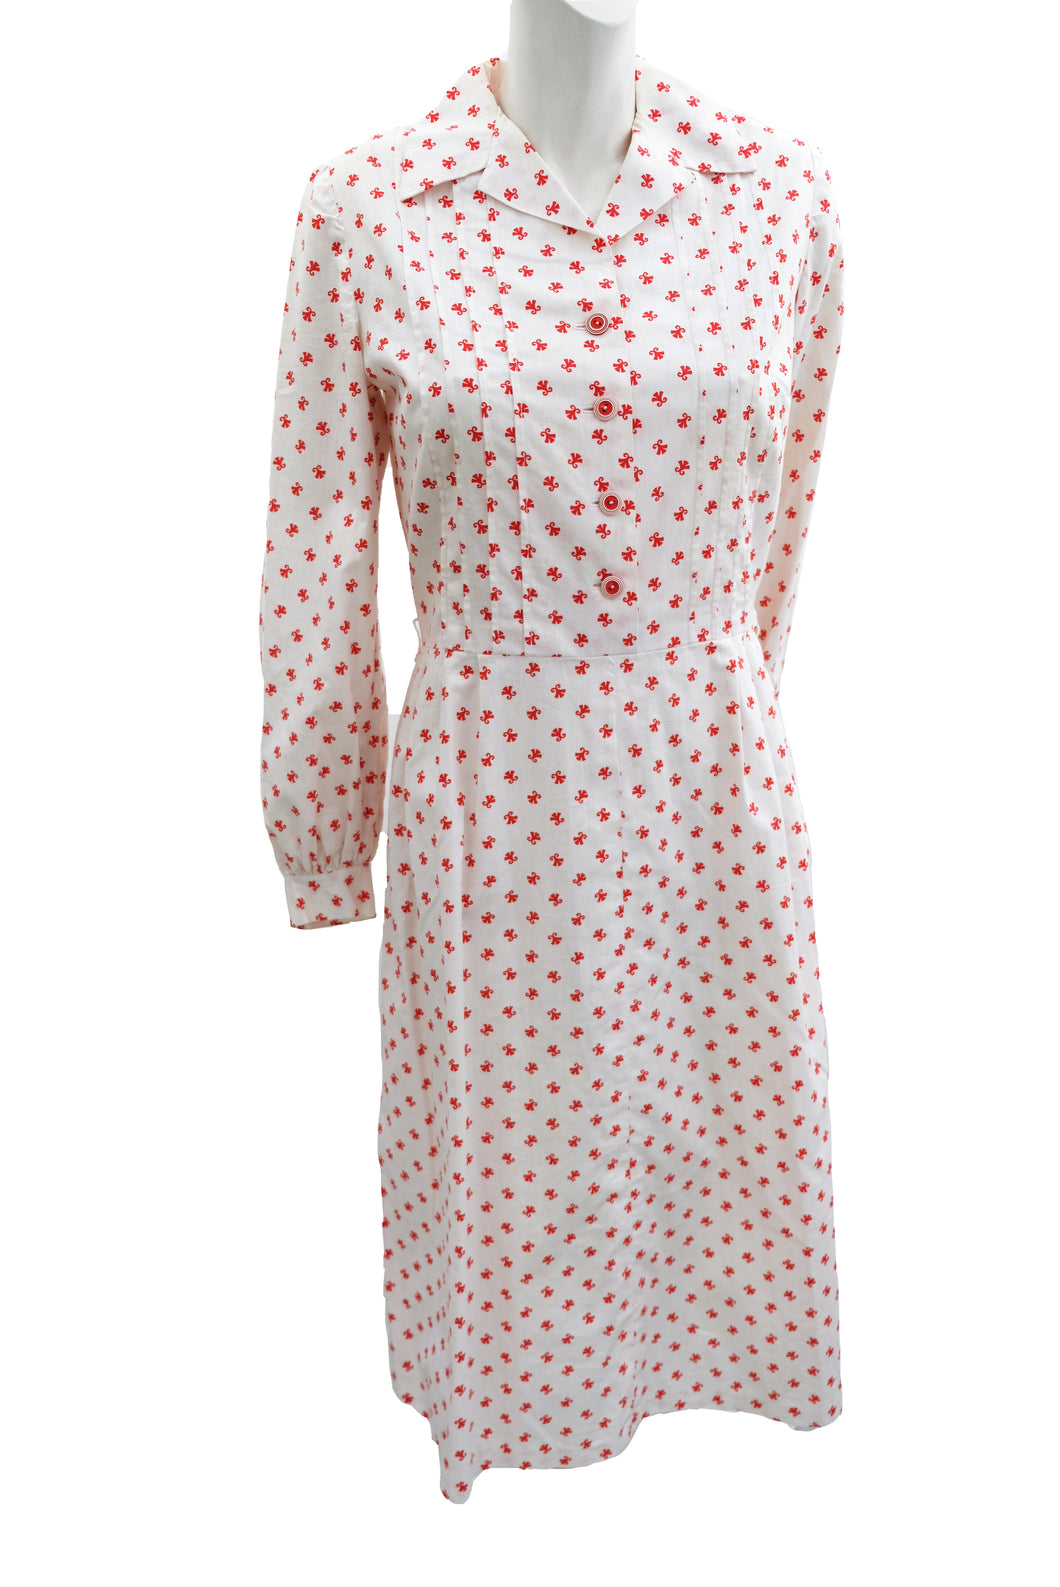 Vintage Handmade Shirt Dress in White with Red Motif, UK10